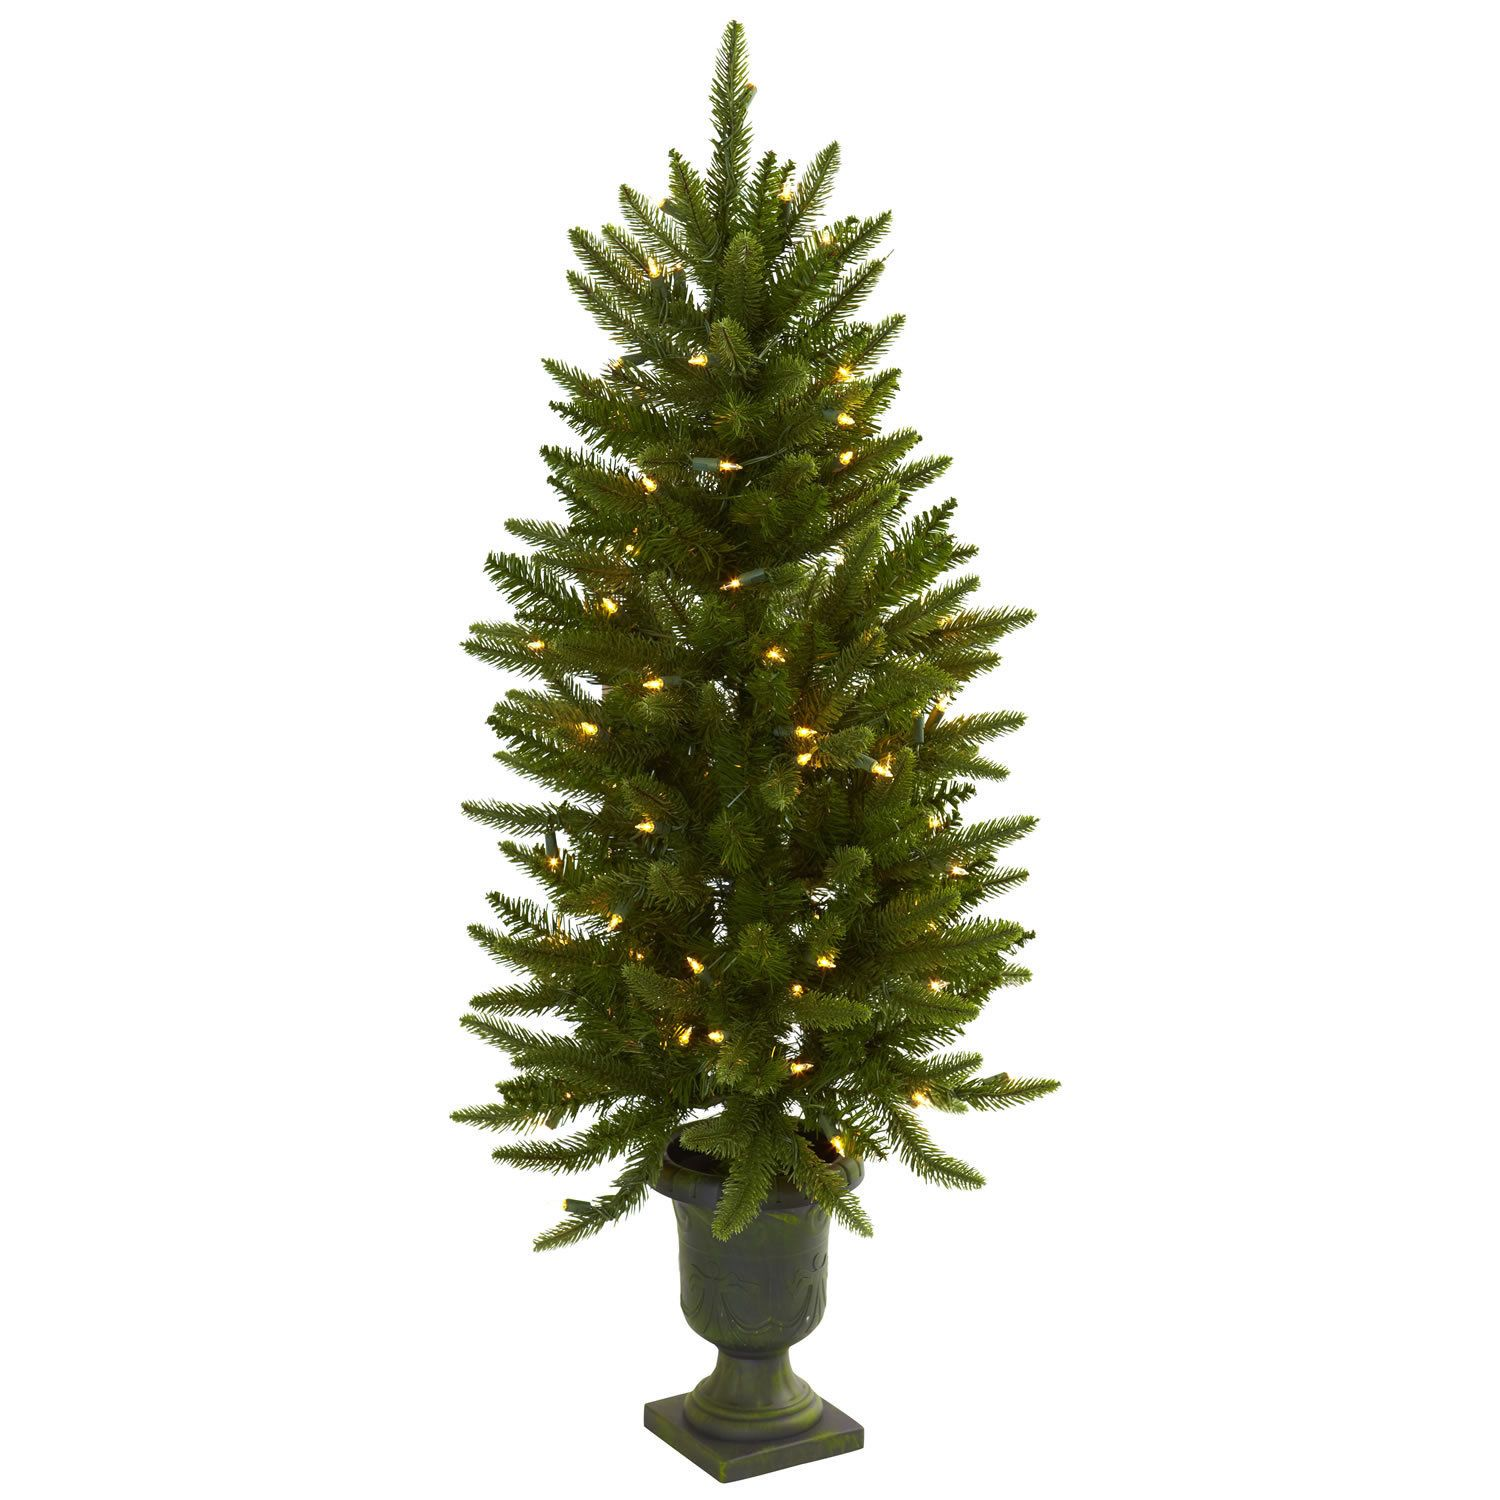 Sure to brighten holiday spirits, here's a piece that's destined to become a favorite holiday decoration. This faux Christmas tree stands 4 feet high in its decorative urn and comes with 100 clear lights that stay on if one burns out.